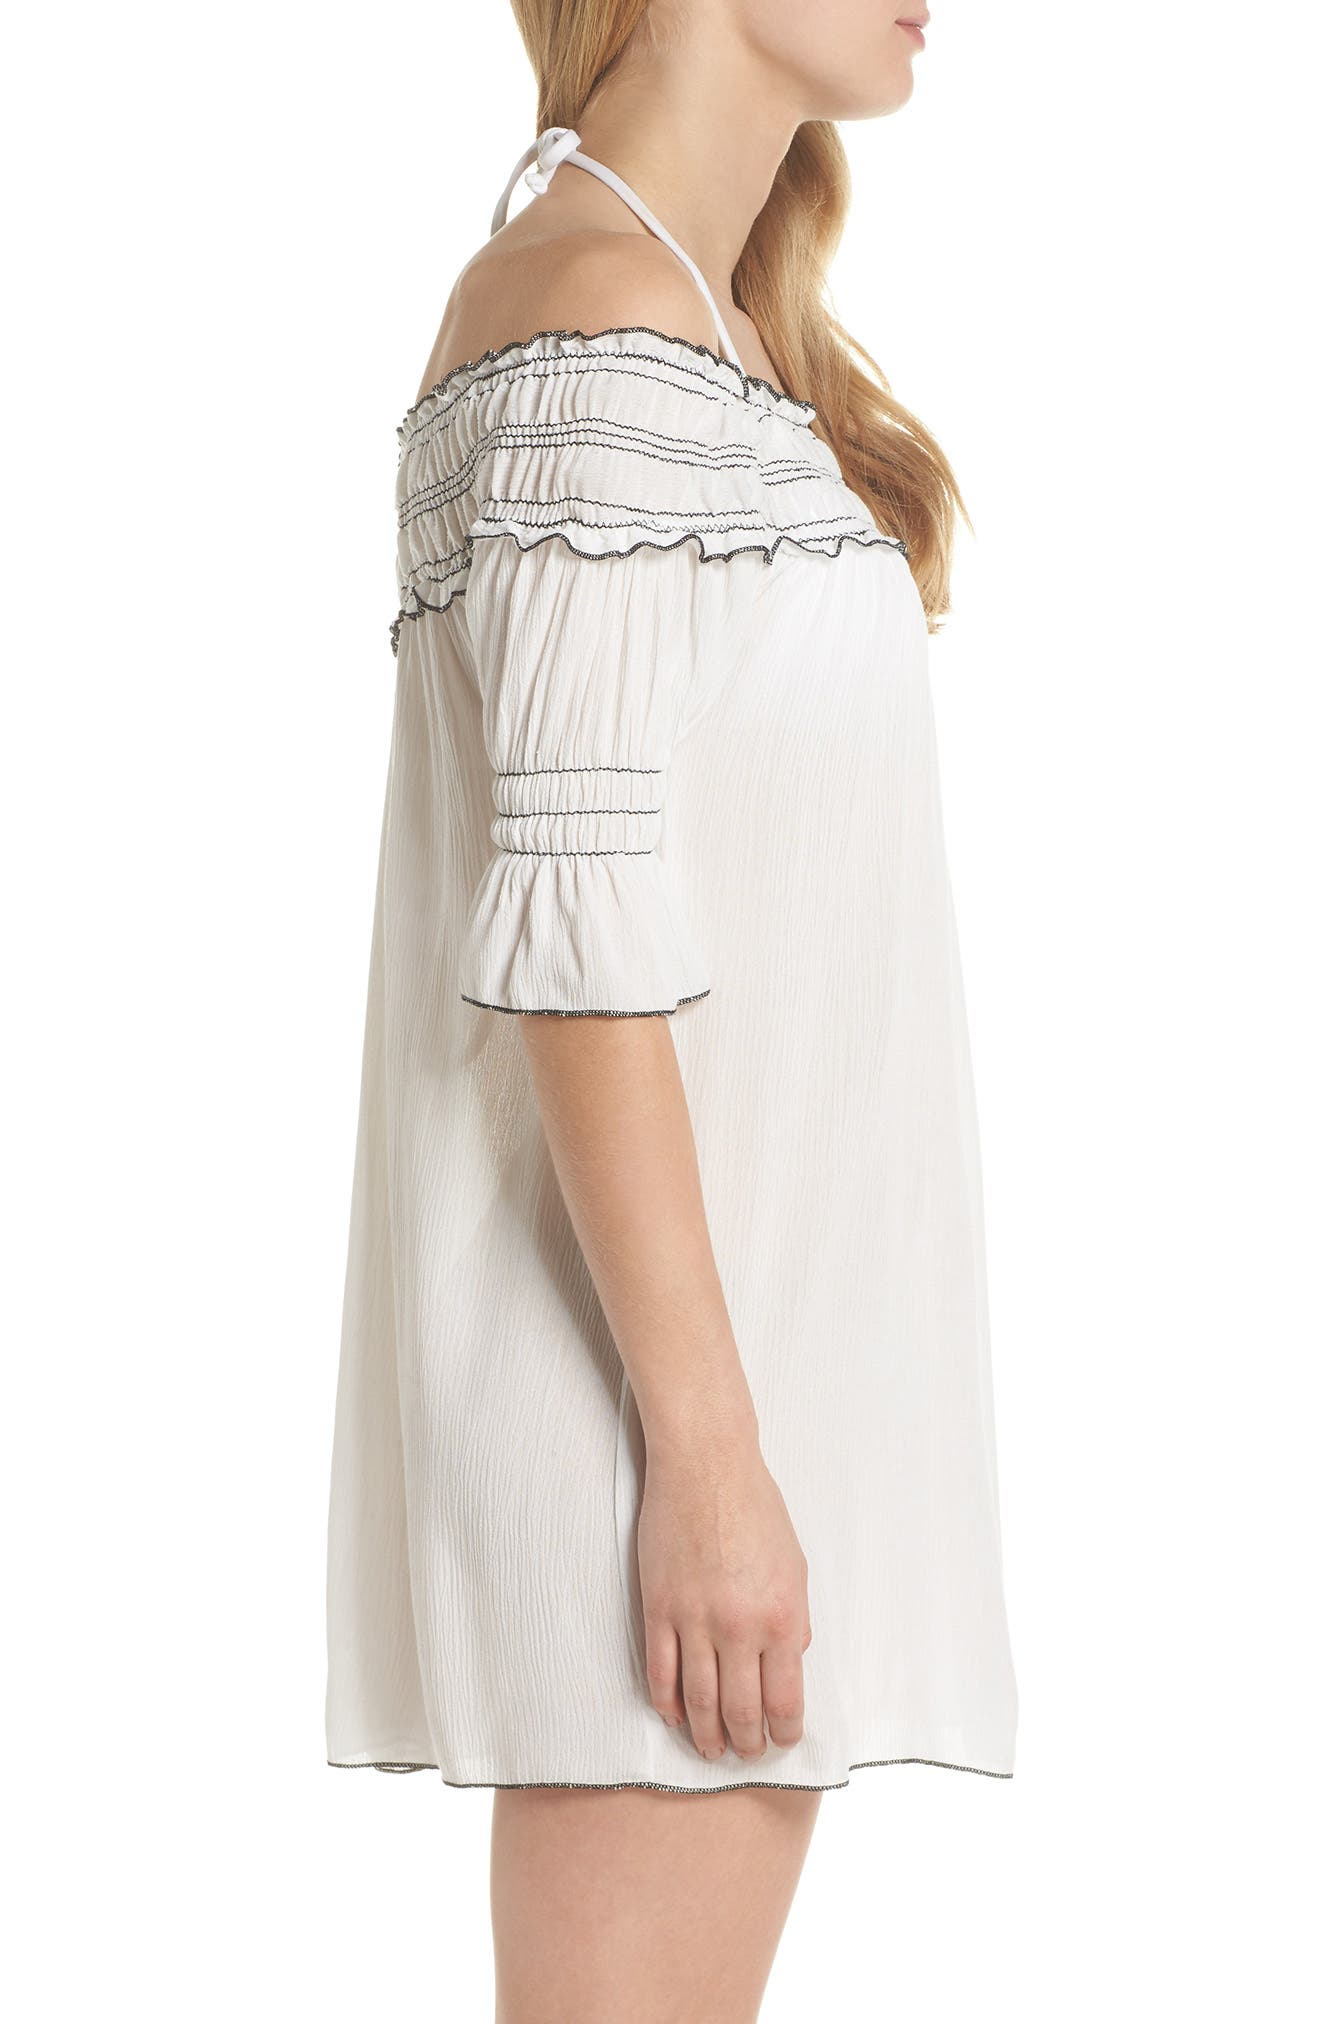 Nightingale Off the Shoulder Cover-Up Dress,                             Alternate thumbnail 3, color,                             White